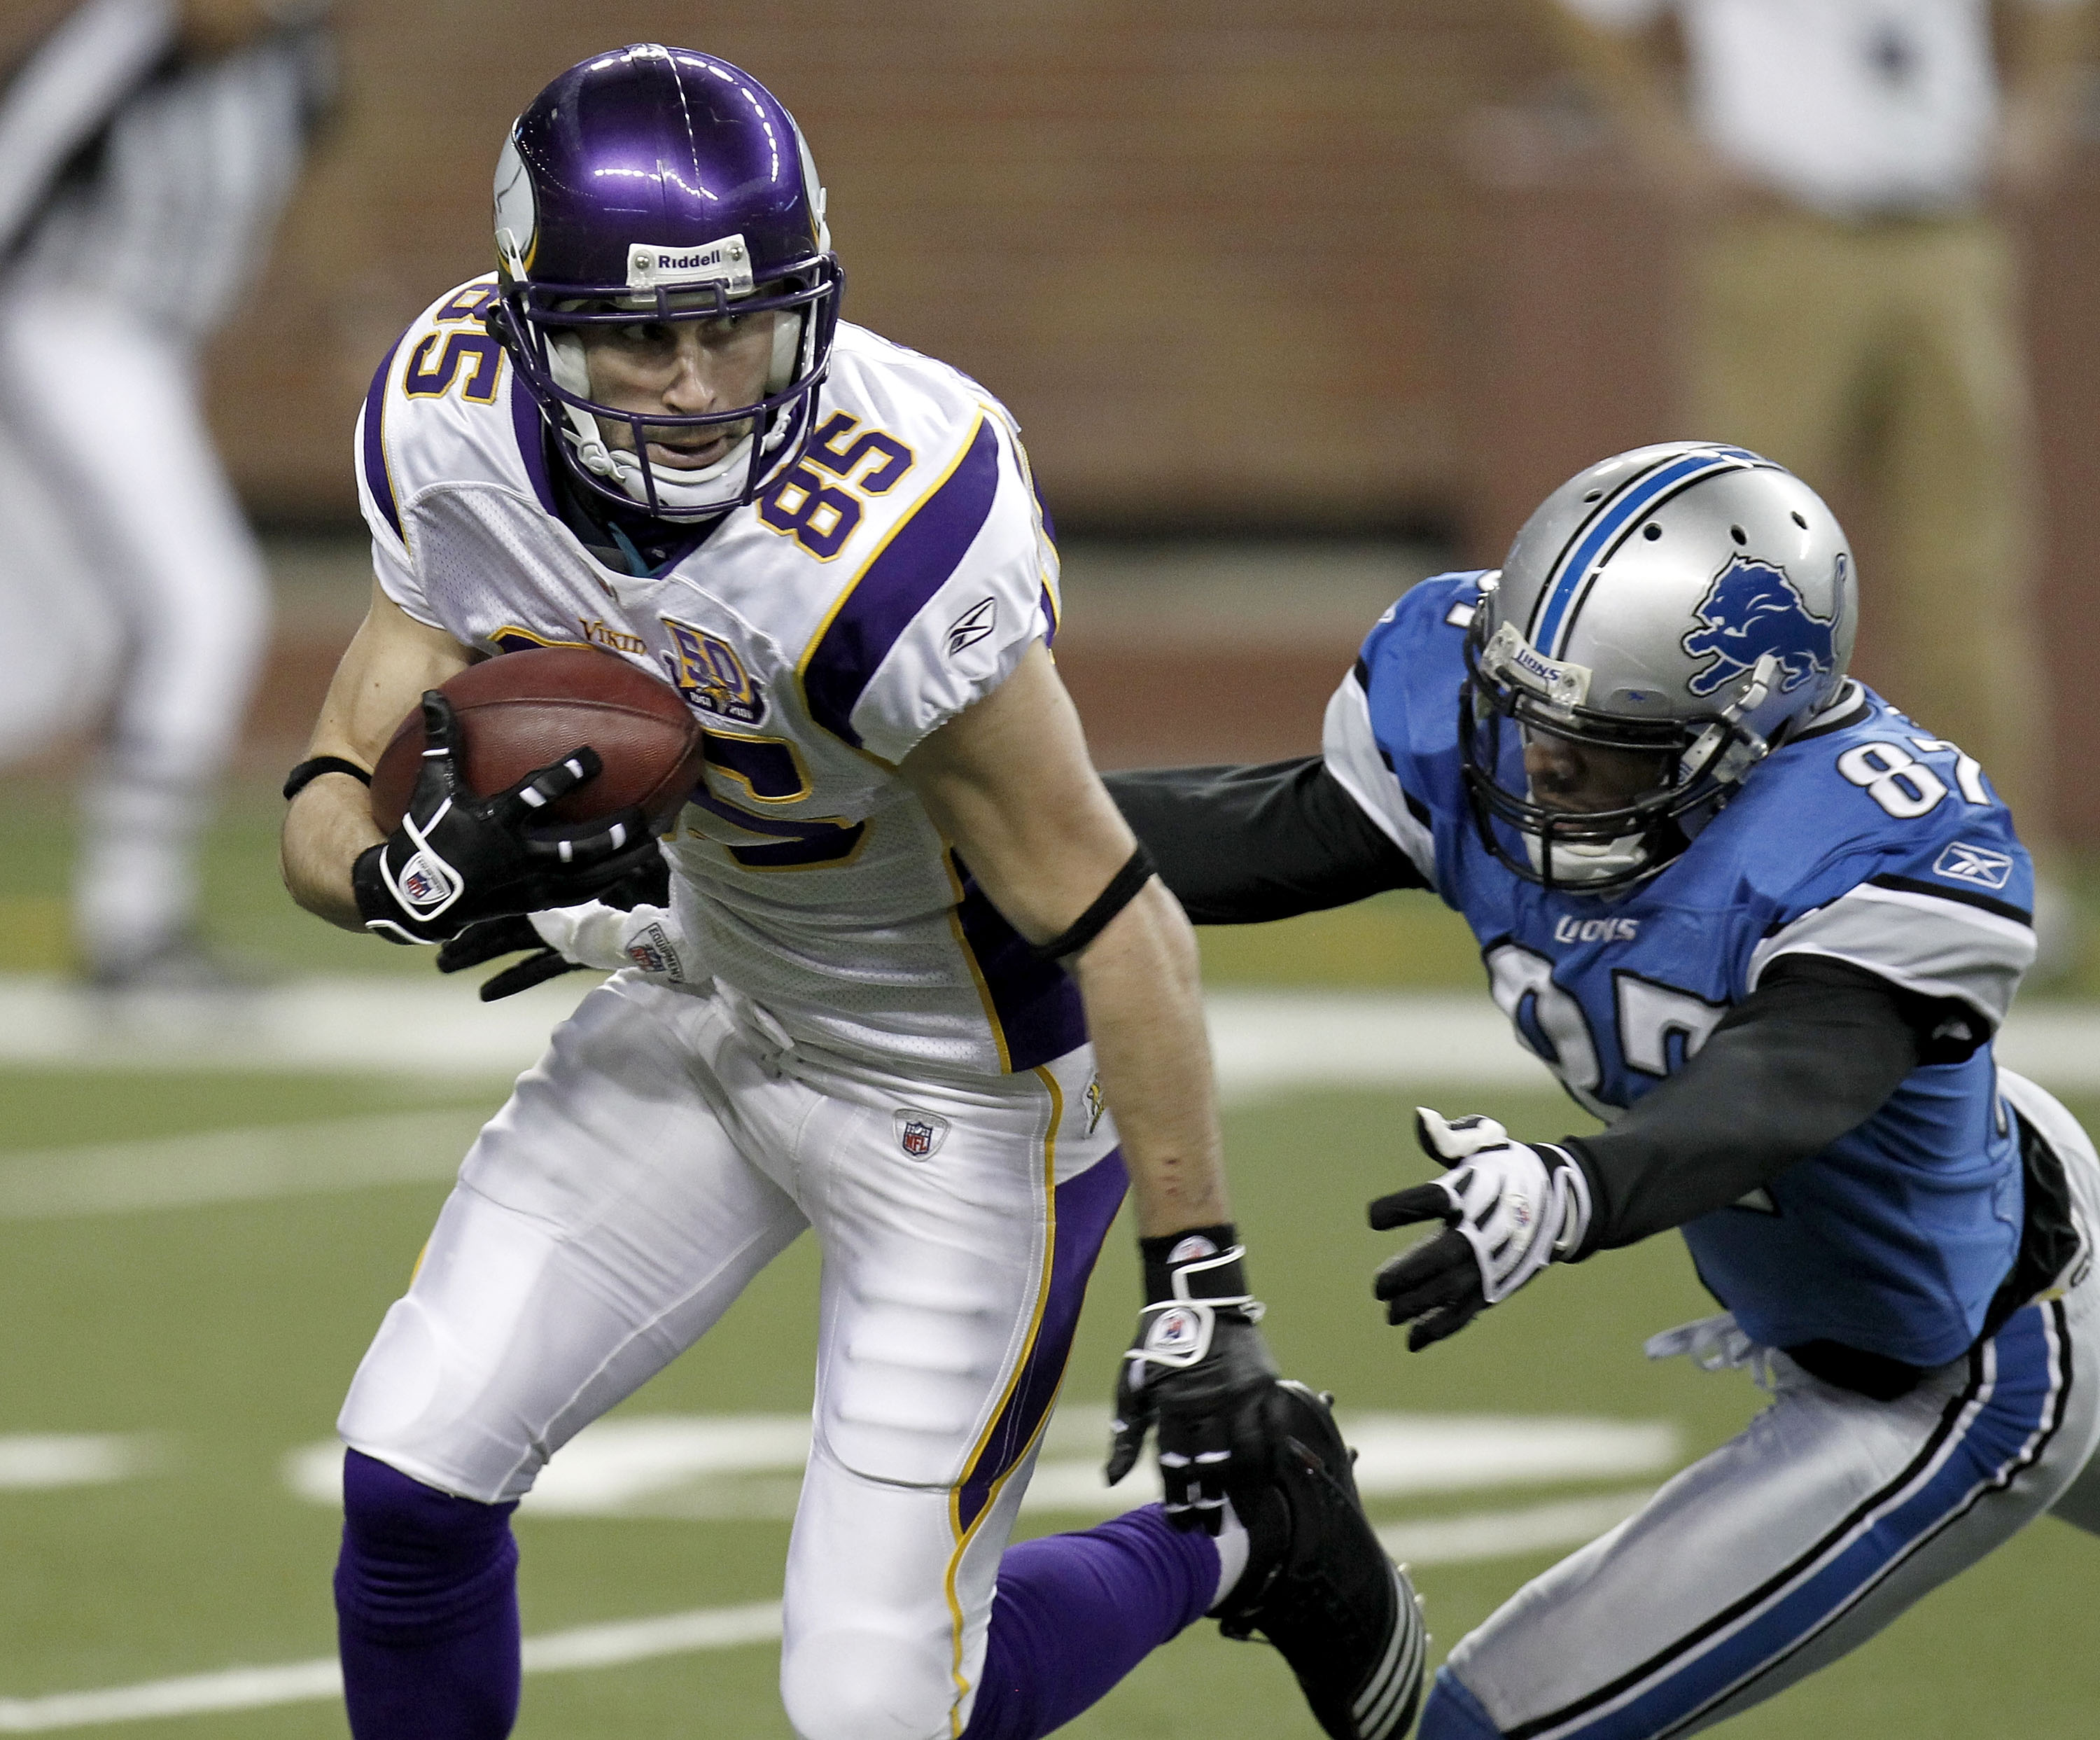 DETROIT, MI - JANUARY 02: Greg Camarillo #85 of the Minnesota Vikings is chased by Brian Clark #87 of the Detroit Lions while he retuns a fourth quarter punt at Ford Field on January 2, 2011 in Detroit, Michigan.  (Photo by Gregory Shamus/Getty Images)